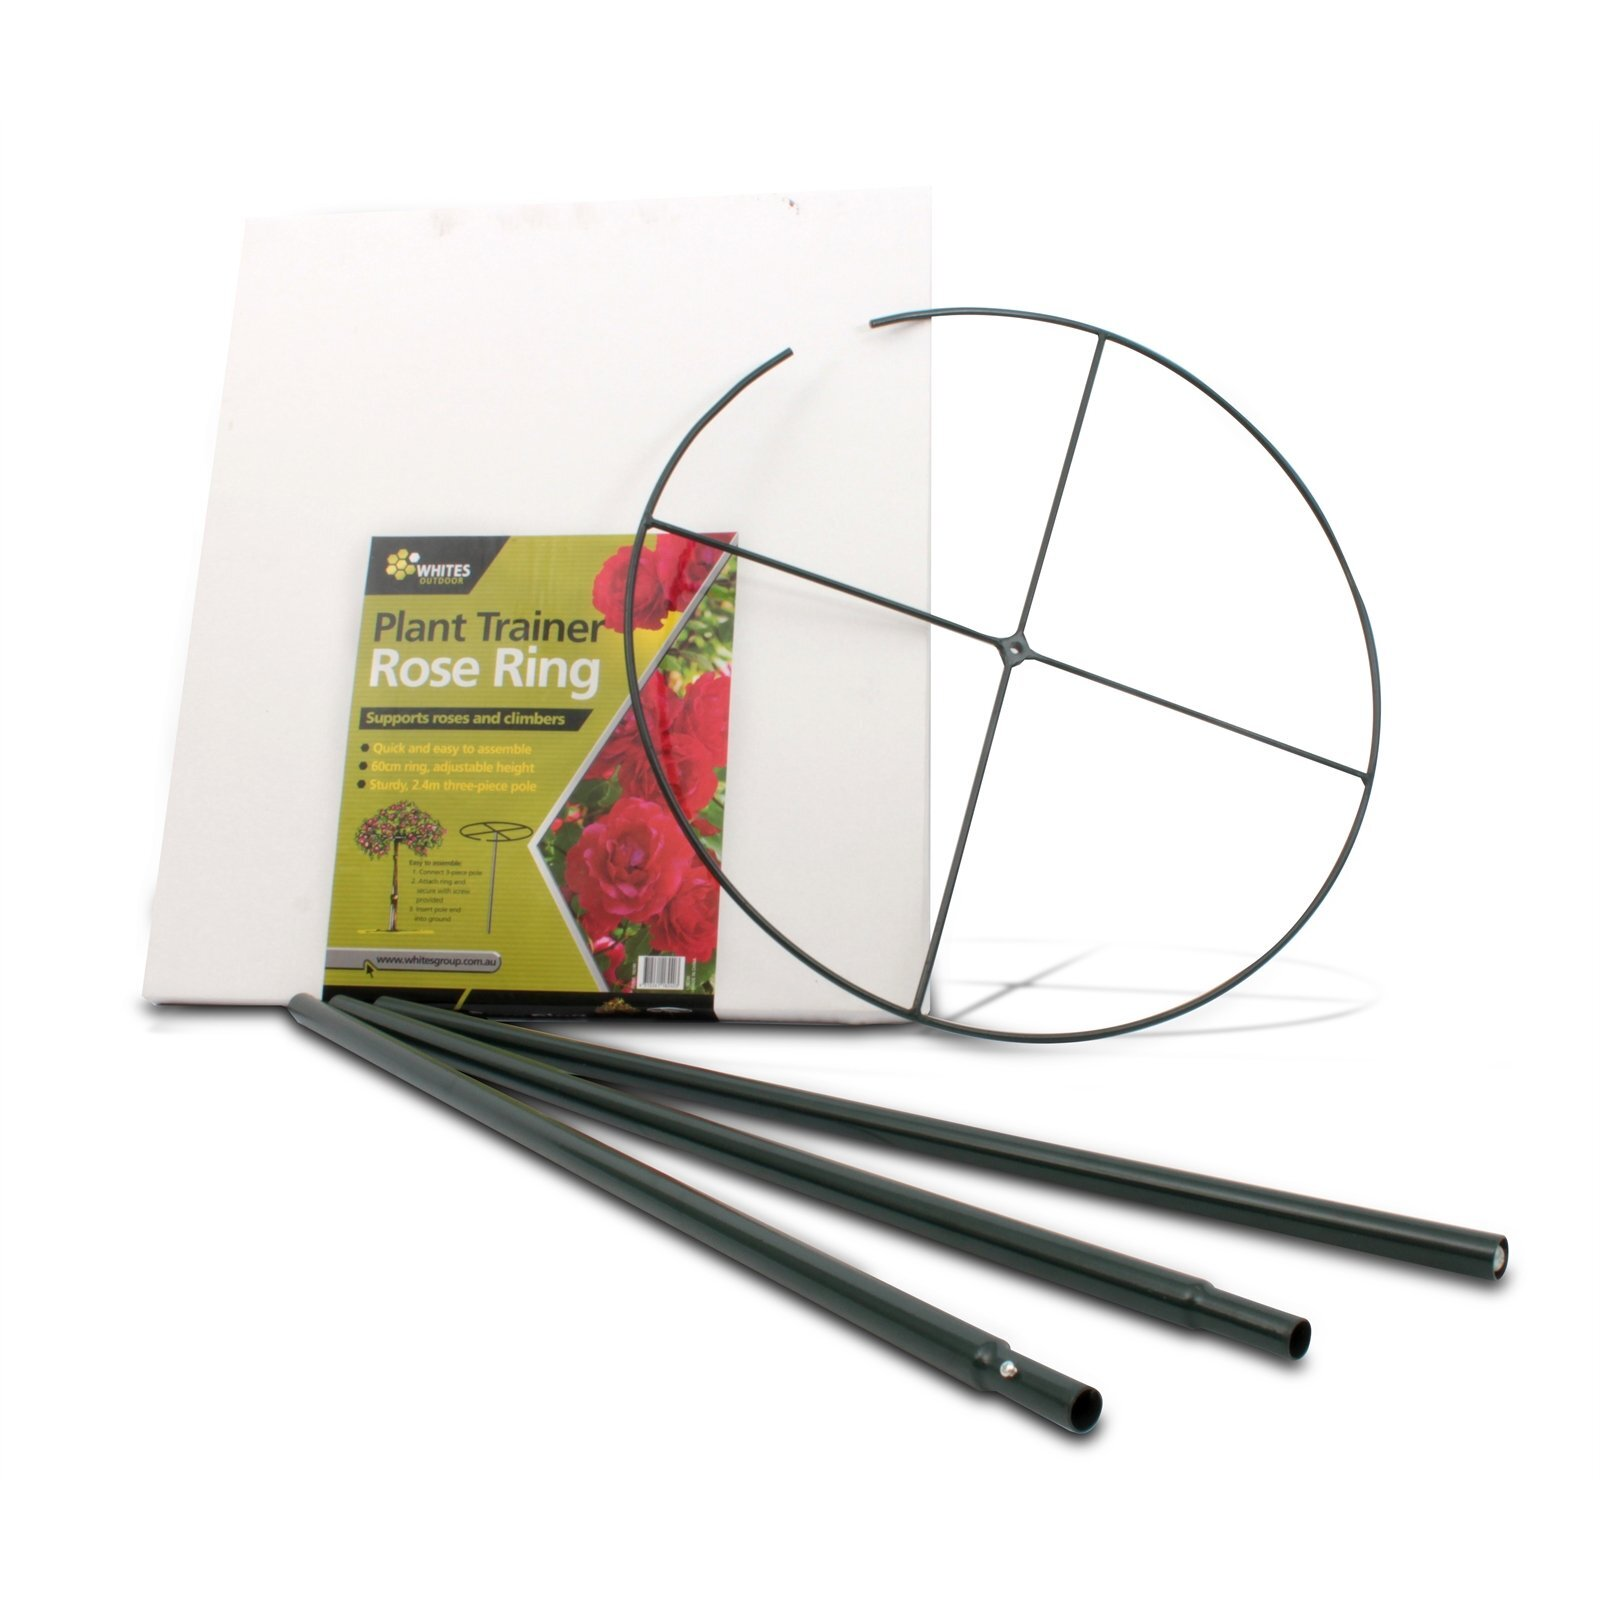 Whites 2400 x 600mm Green 4 Piece Rose Ring Plant Trainer